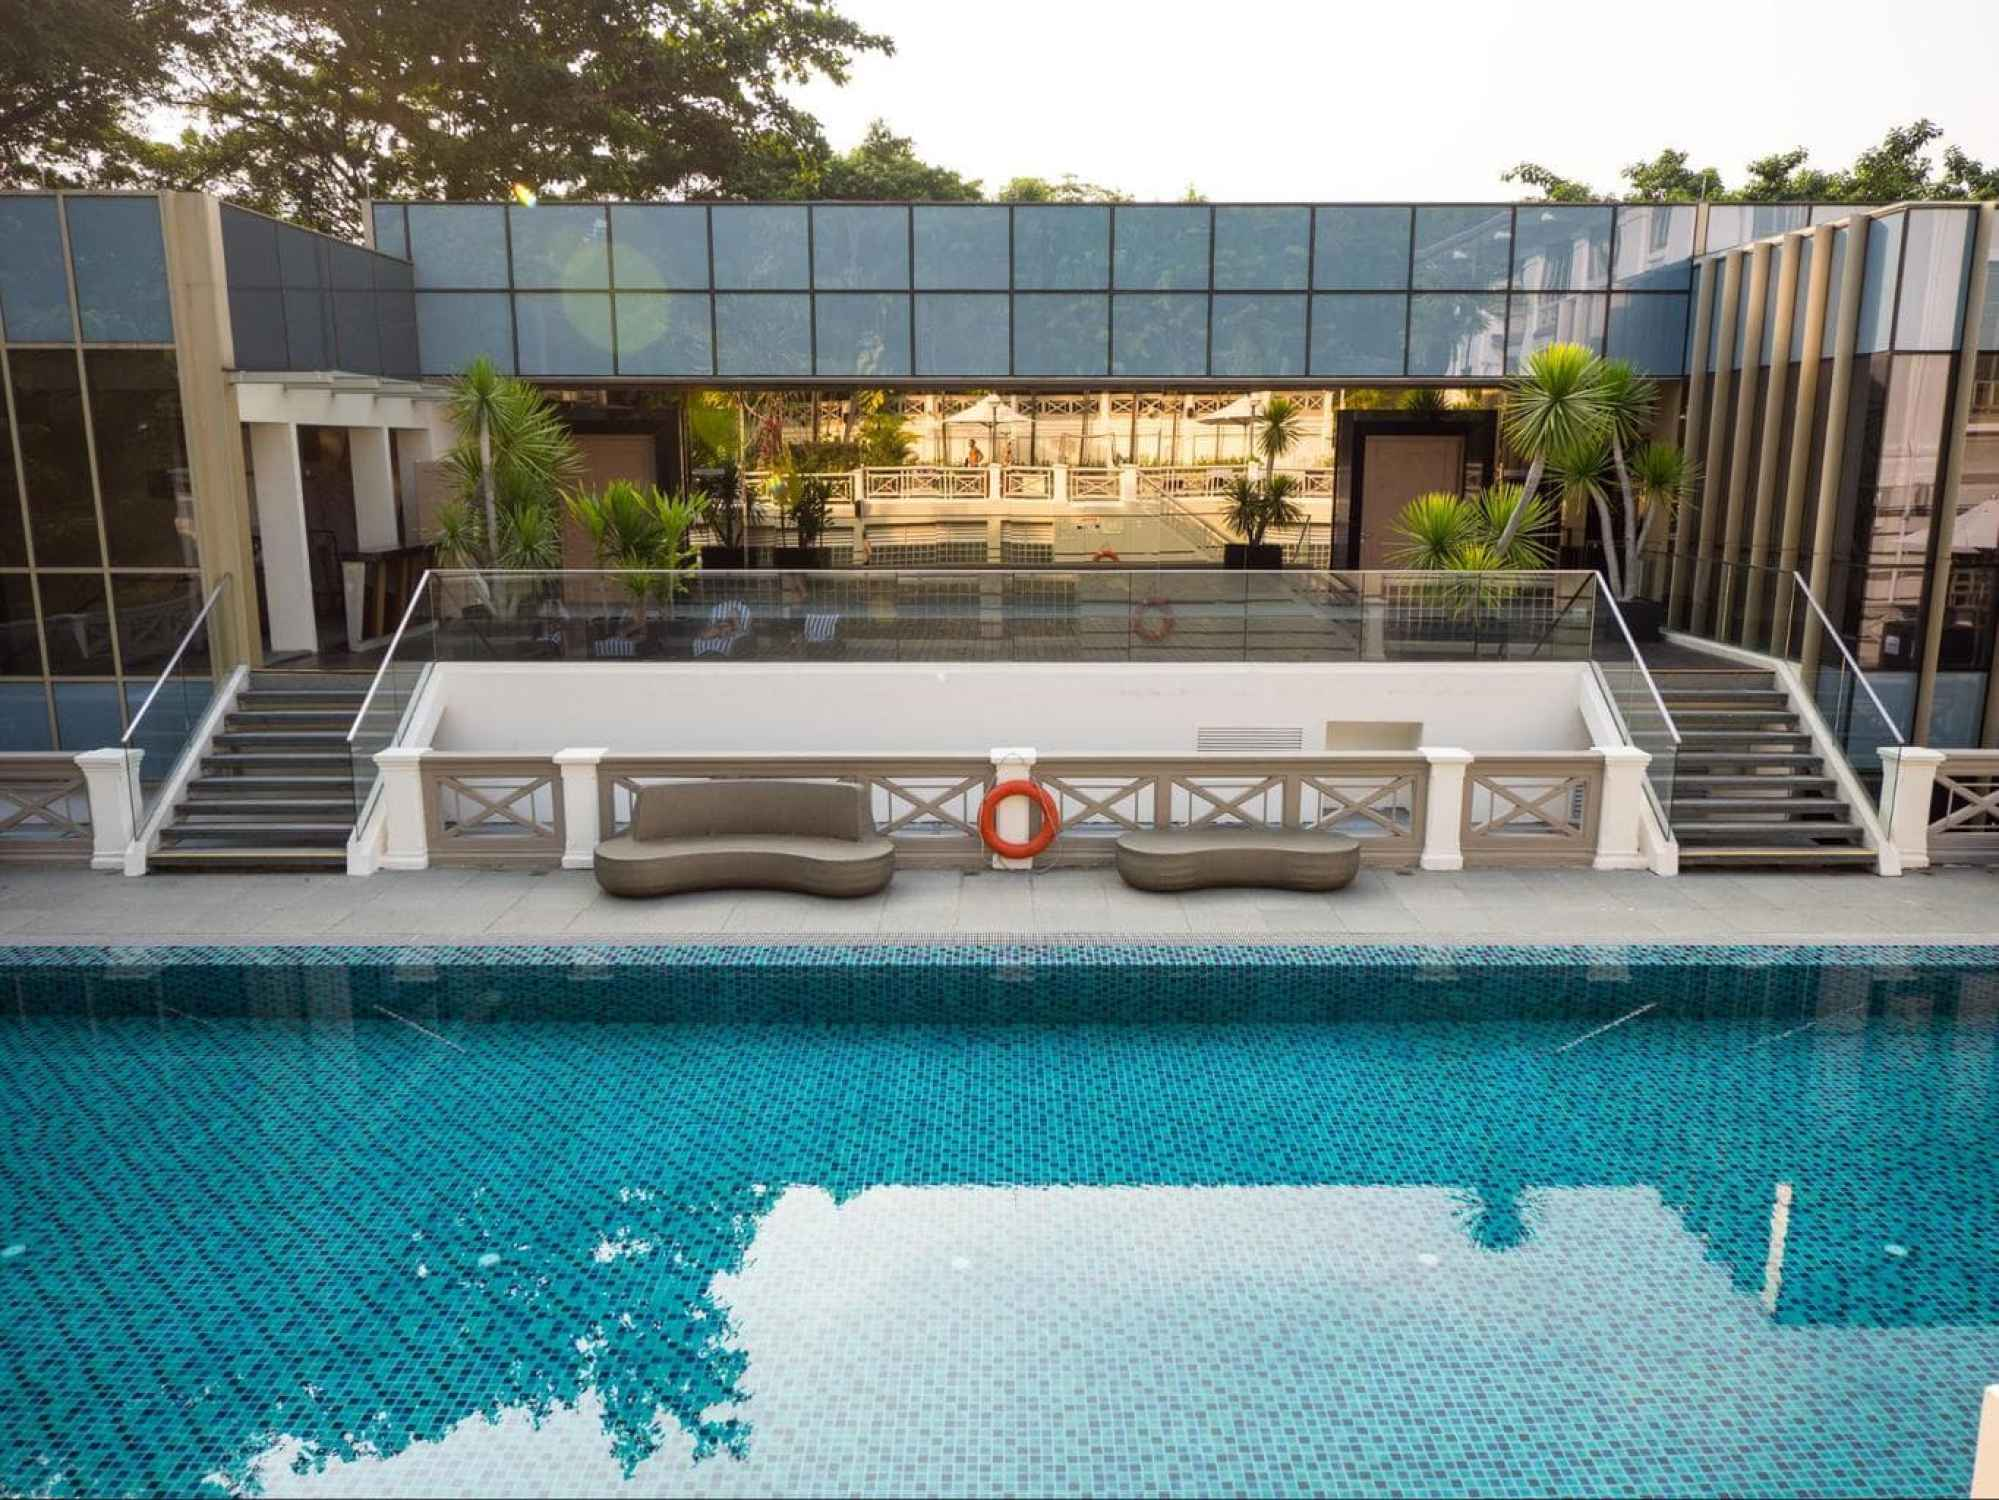 The second pool at Hotel Fort Canning